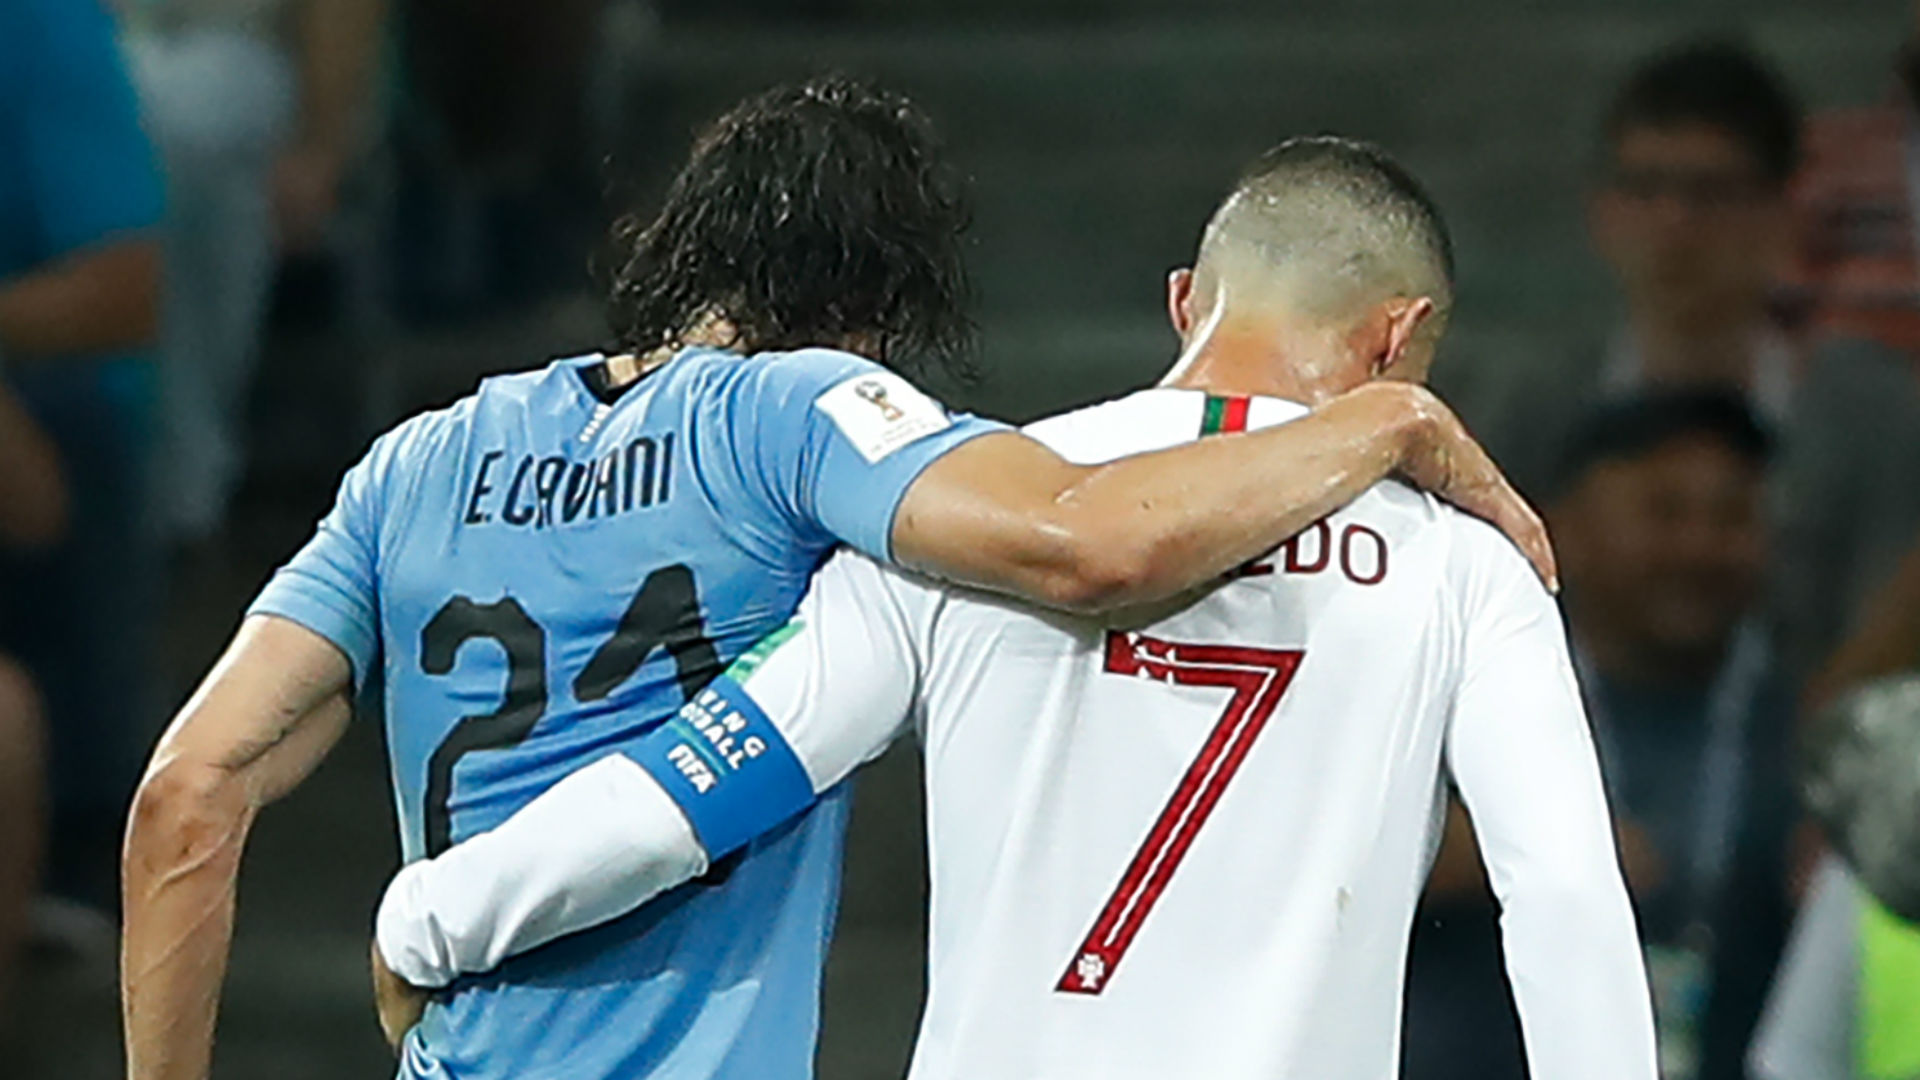 Cavani injury worry for Uruguay after two-goal heroics